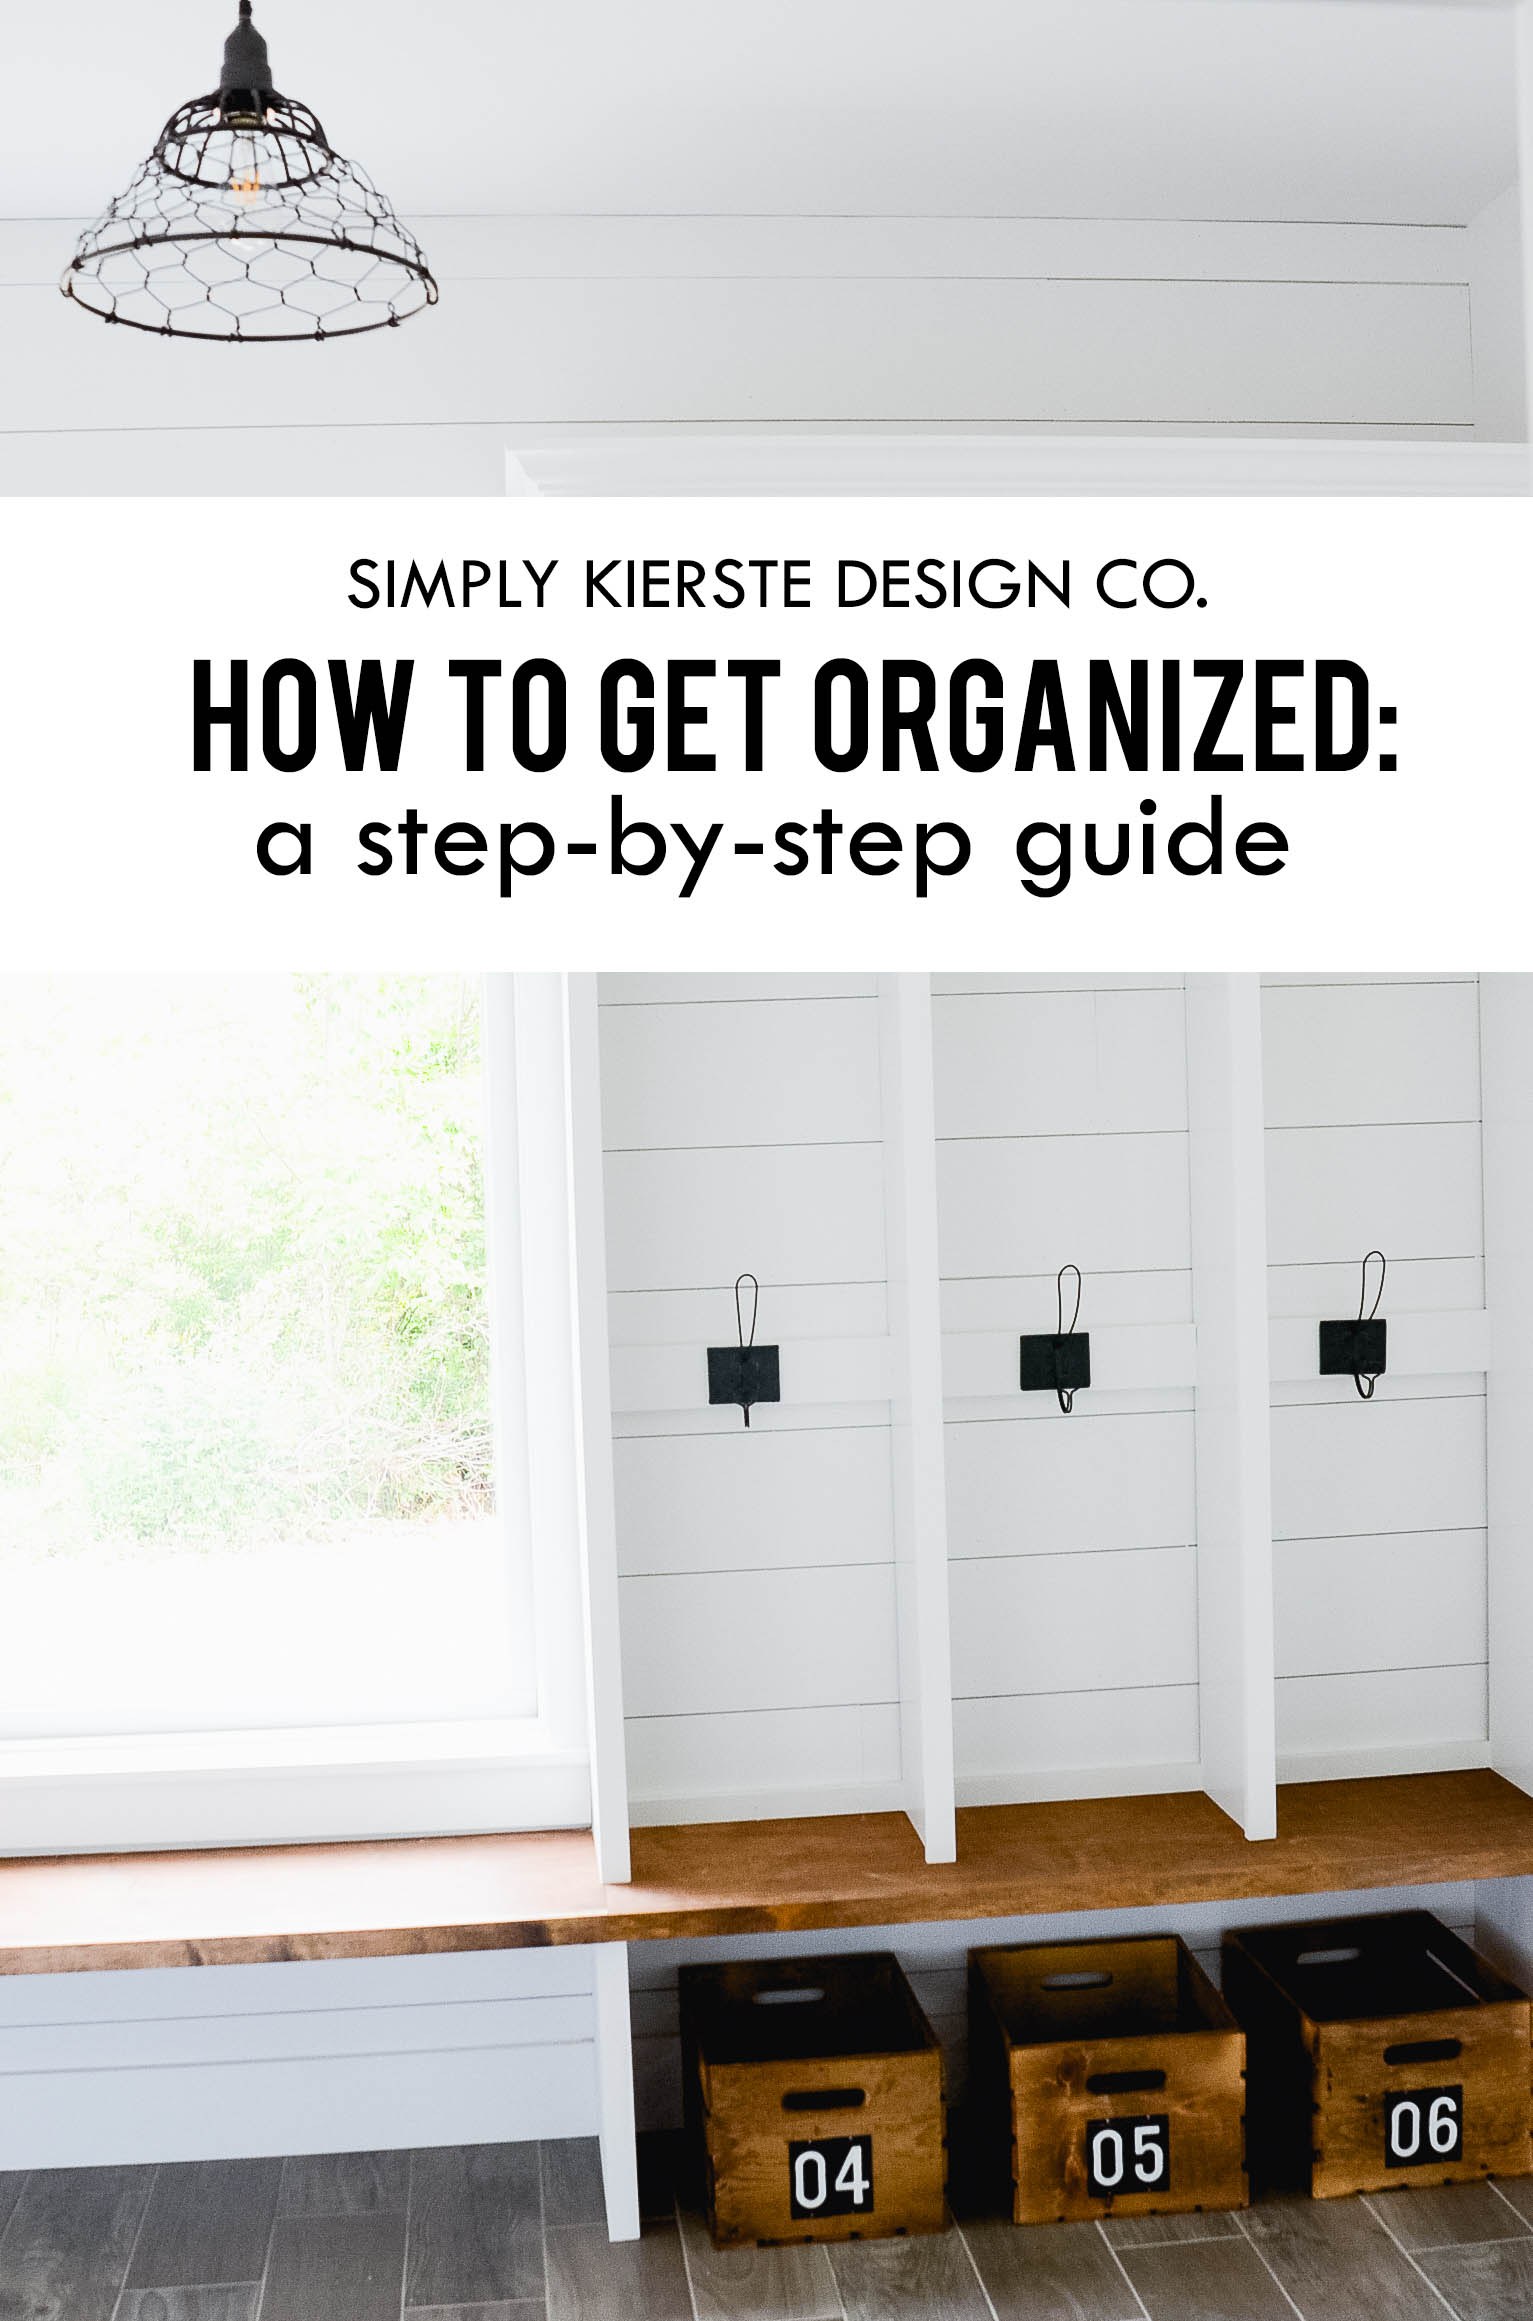 How to get organized | A guide to getting started | simplykierste.com #gettingorganized #howtogetorganized #organizationtips #organizationideas